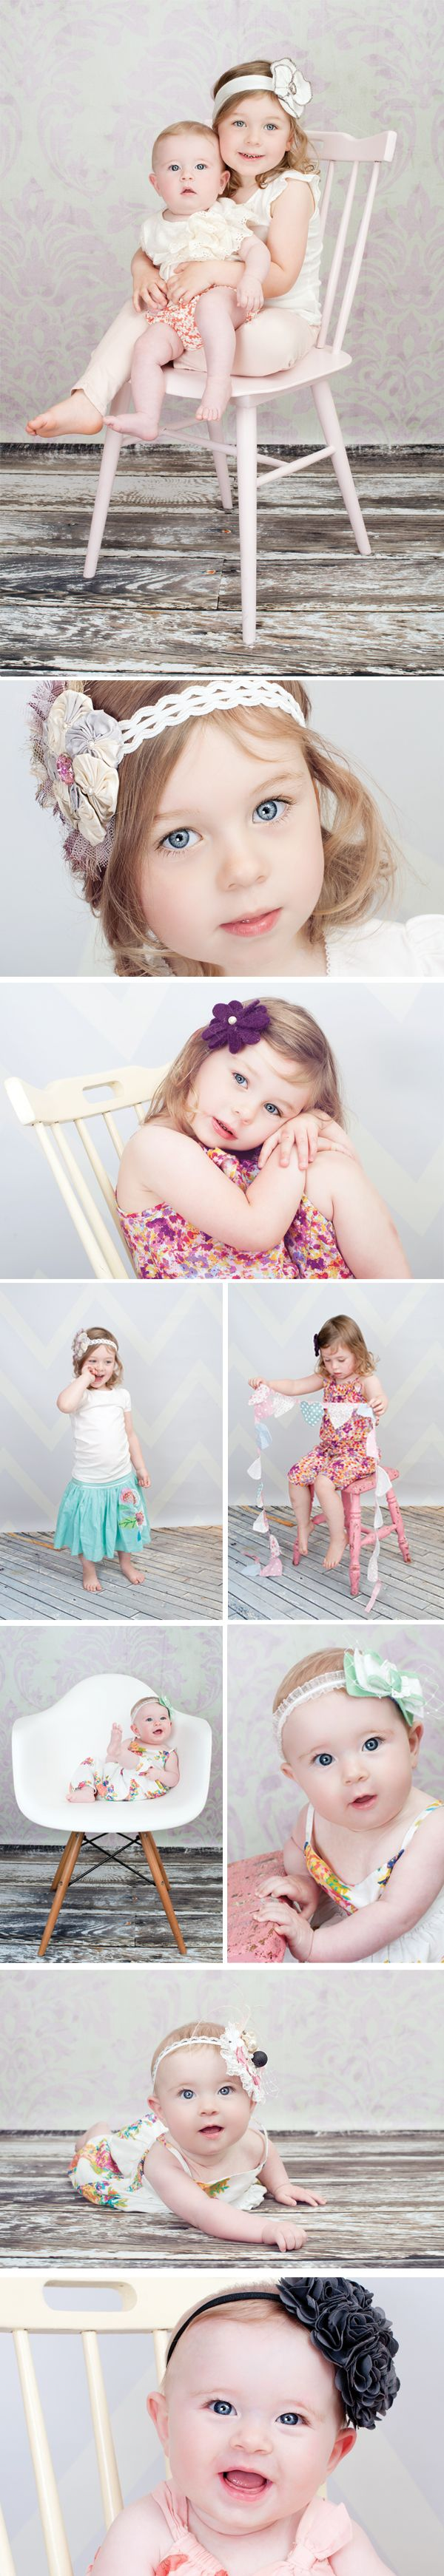 We got to photograph these beautiful sisters! Their Mummy won a competition for a Free session in Manchester's Elite Magazine. Lucky her  Big sister Aurla was nearly 3 and Eliza 4 months. They were just wonderful, as the photos most definitely show! We love to photograph older children too for some interaction.